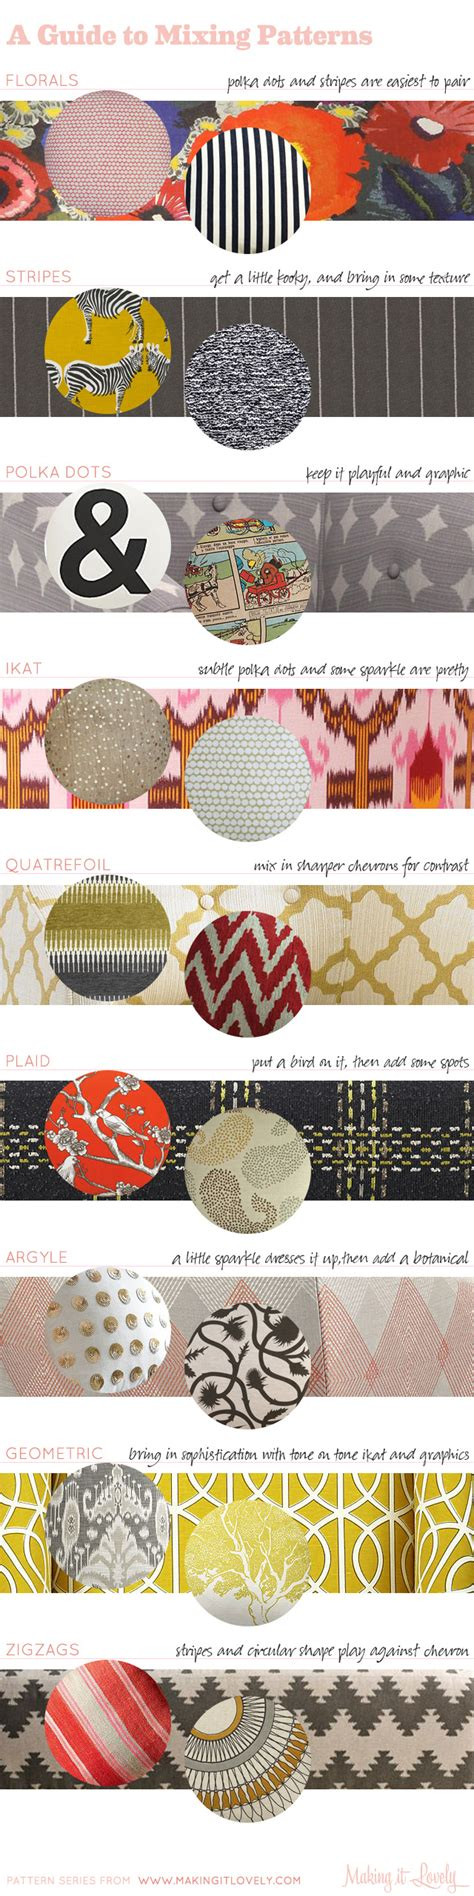 pattern mixing a guide to mixing patterns in your home making it lovely